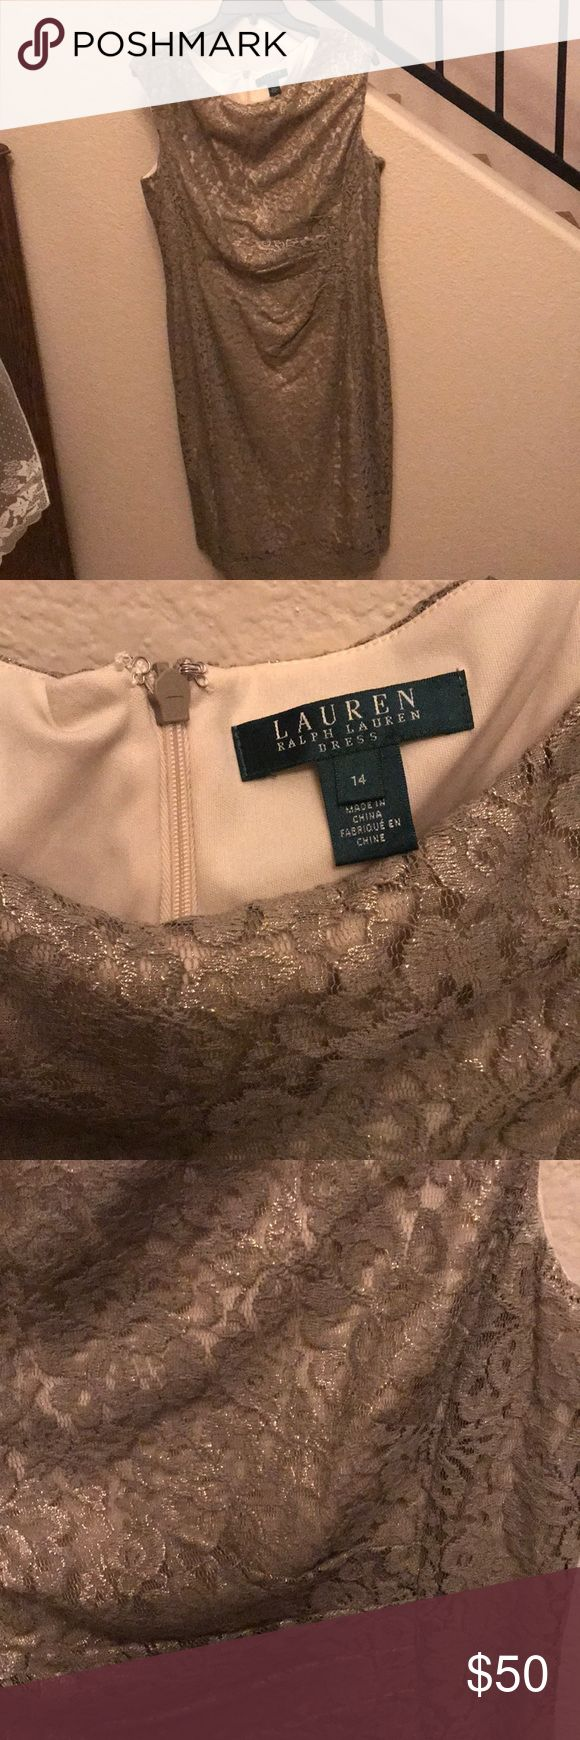 Ralph Lauren Gold lace dress BEAUTIFUL! Ralph Lauren lace and gold dress. This is a stunning dress! Great with a pair of heels for a night out. Never been worn, just sitting in a protecting bag in closet. Women's size 14 40 inches long. Ralph Lauren Dresses